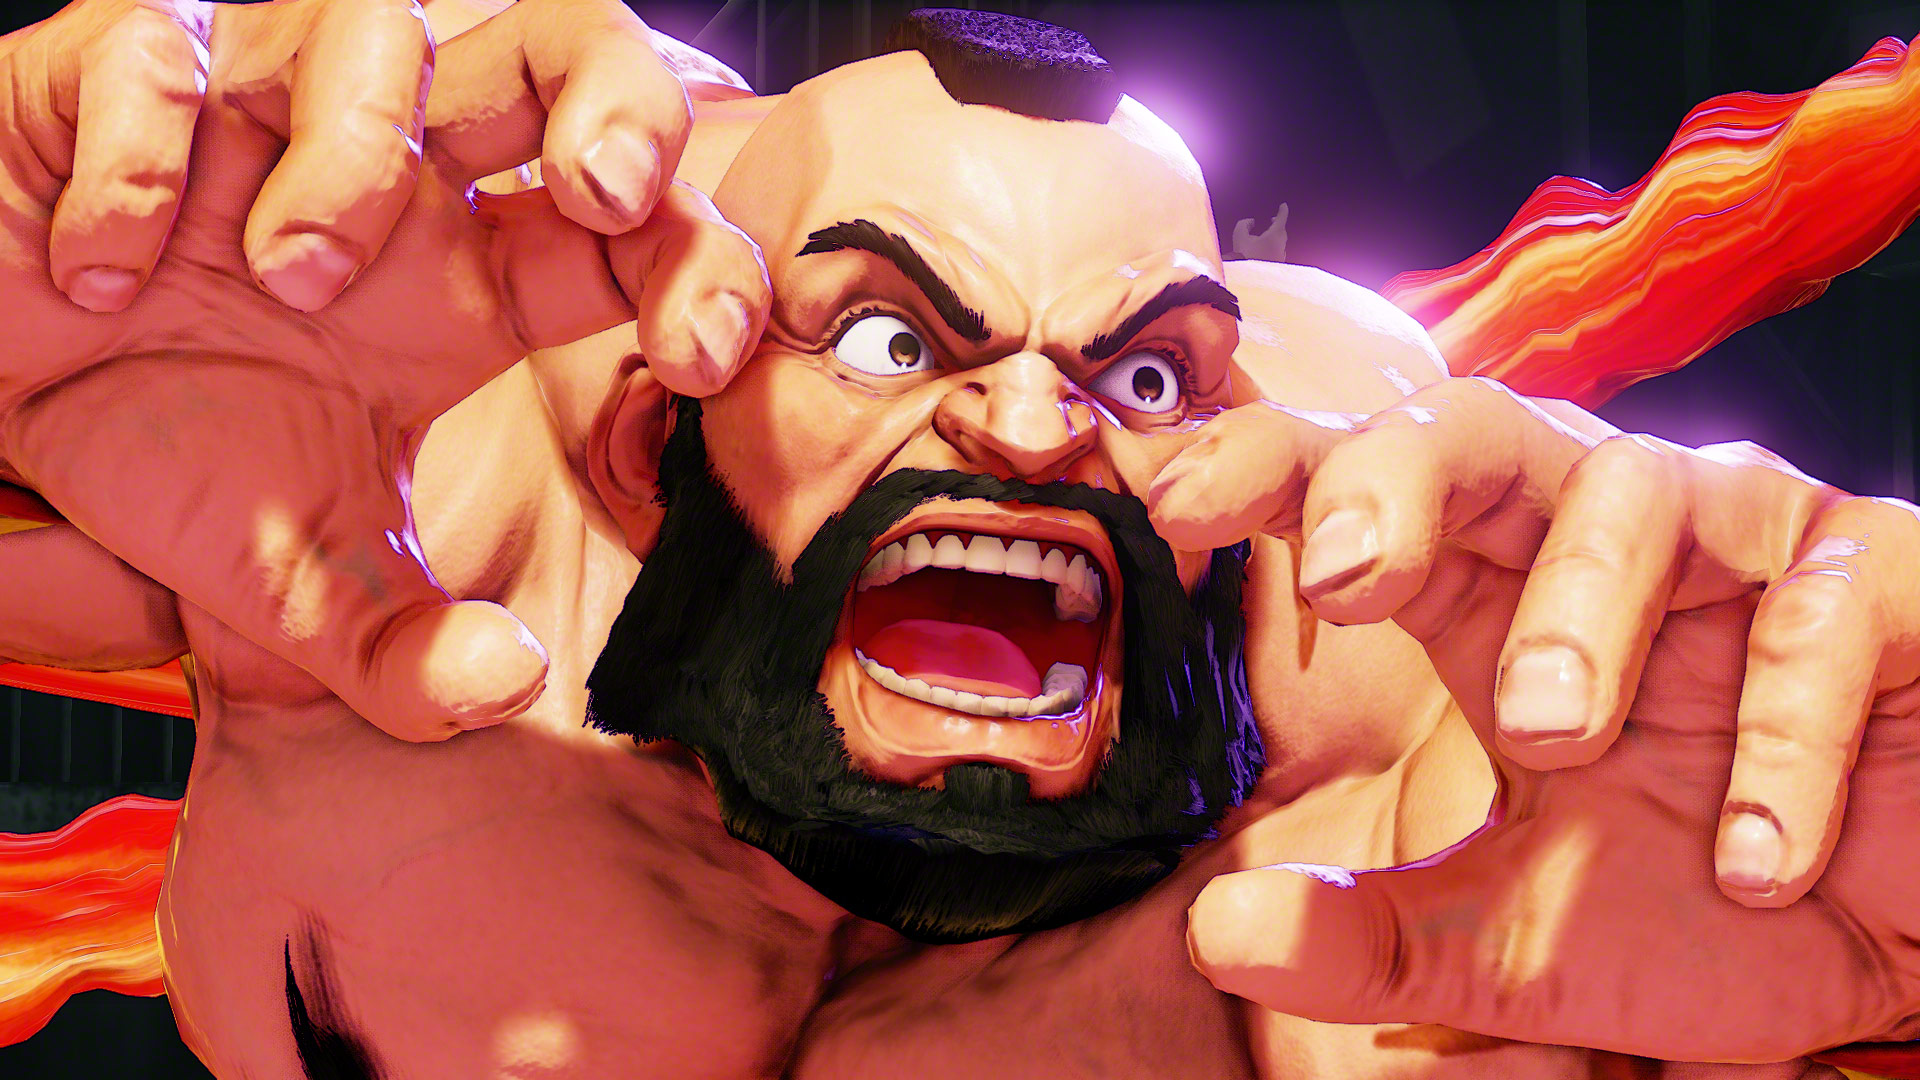 Zangief returns in Street Fighter 5 6 out of 18 image gallery